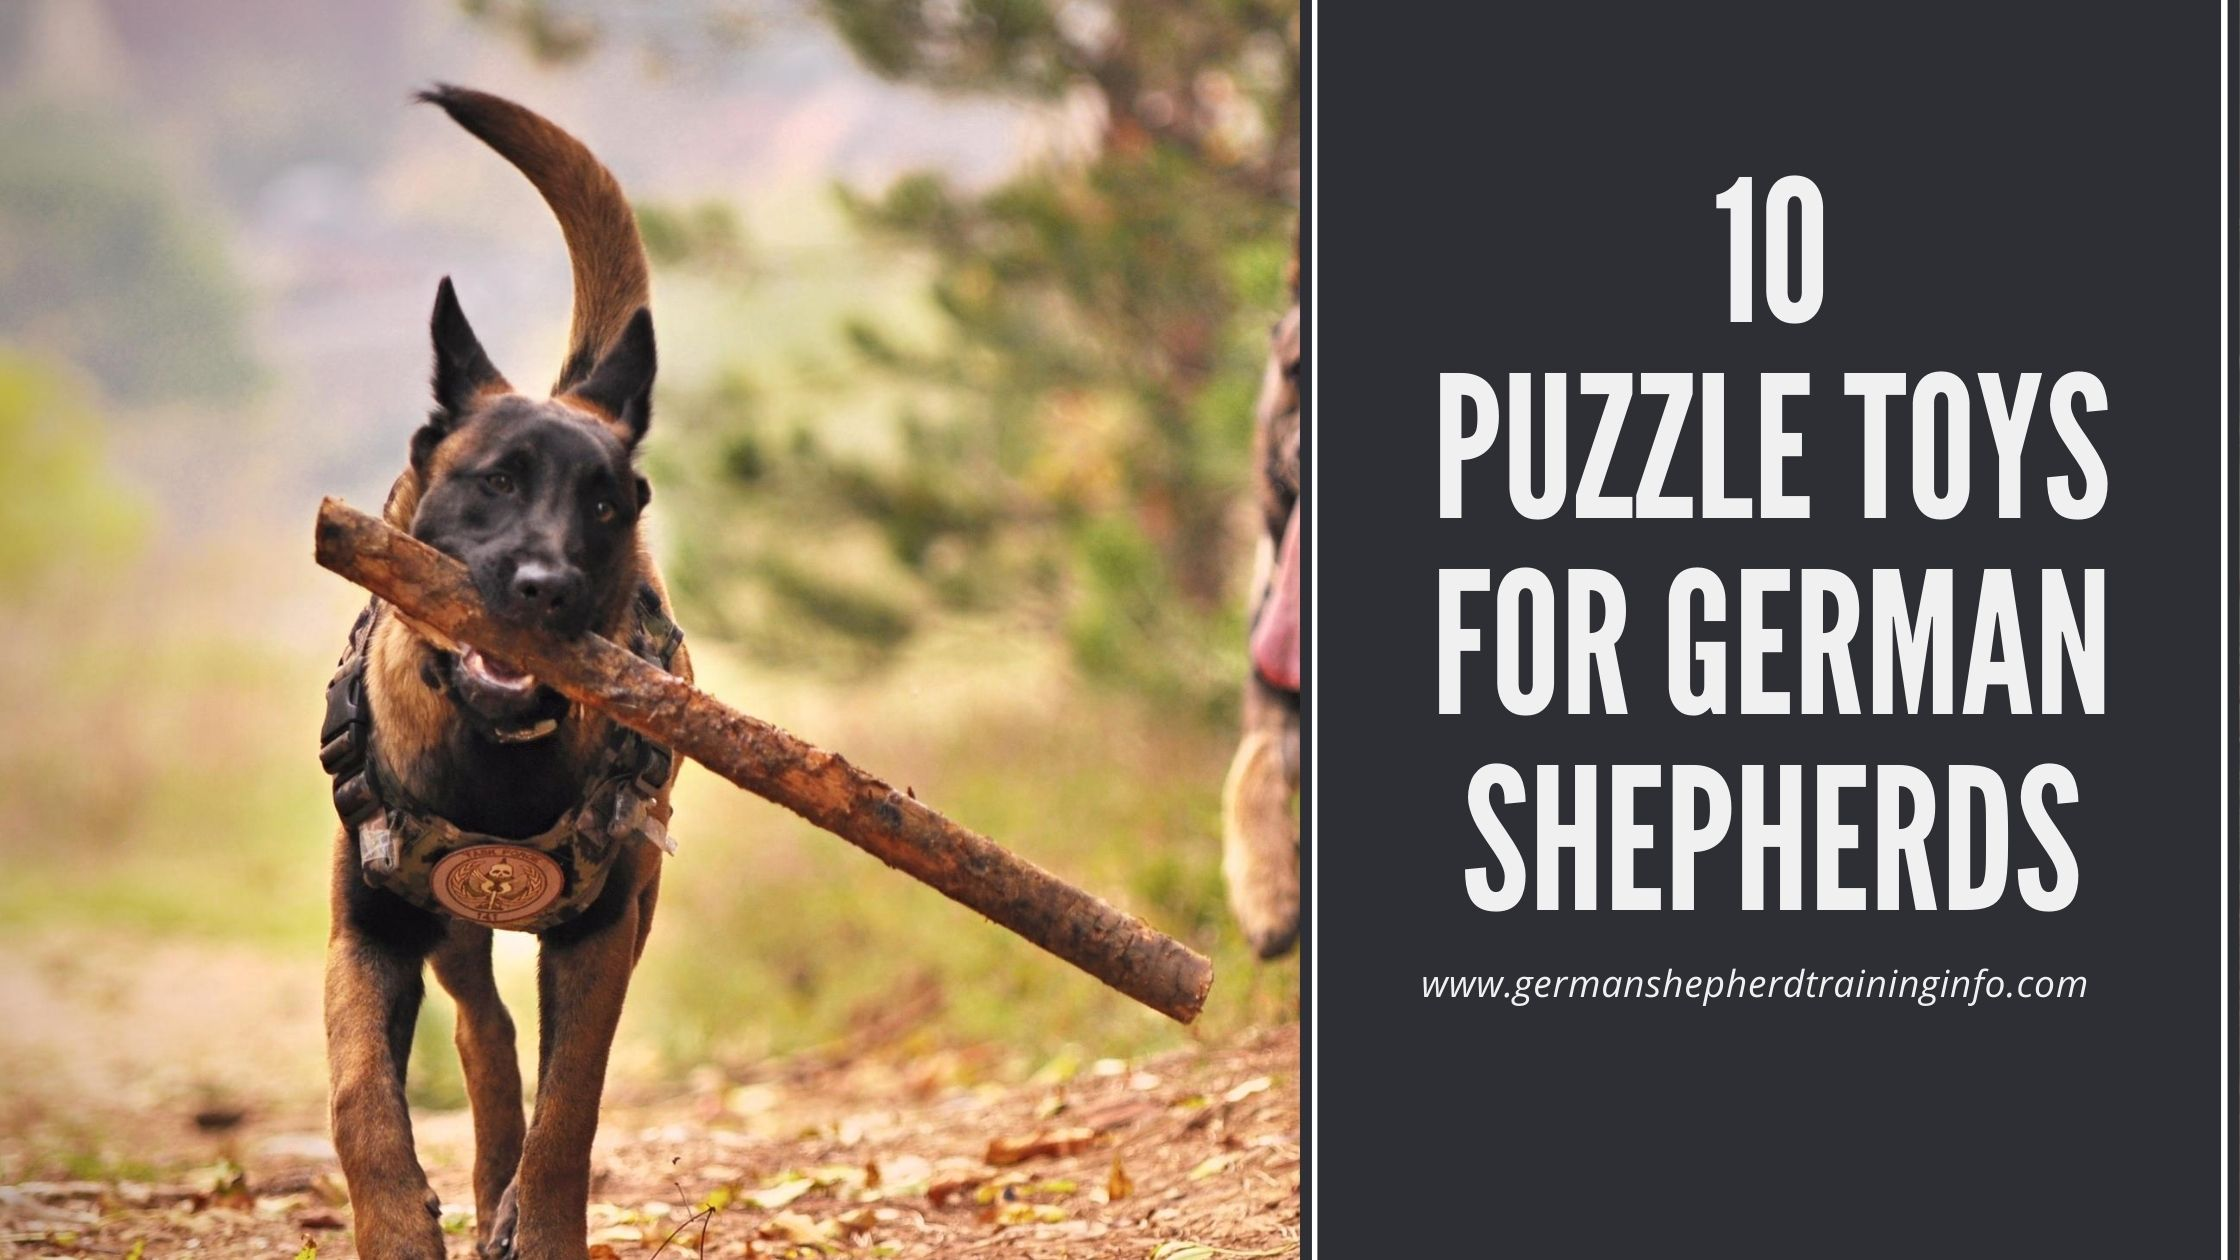 List of top 10 interactive puzzle toys for german shepherds